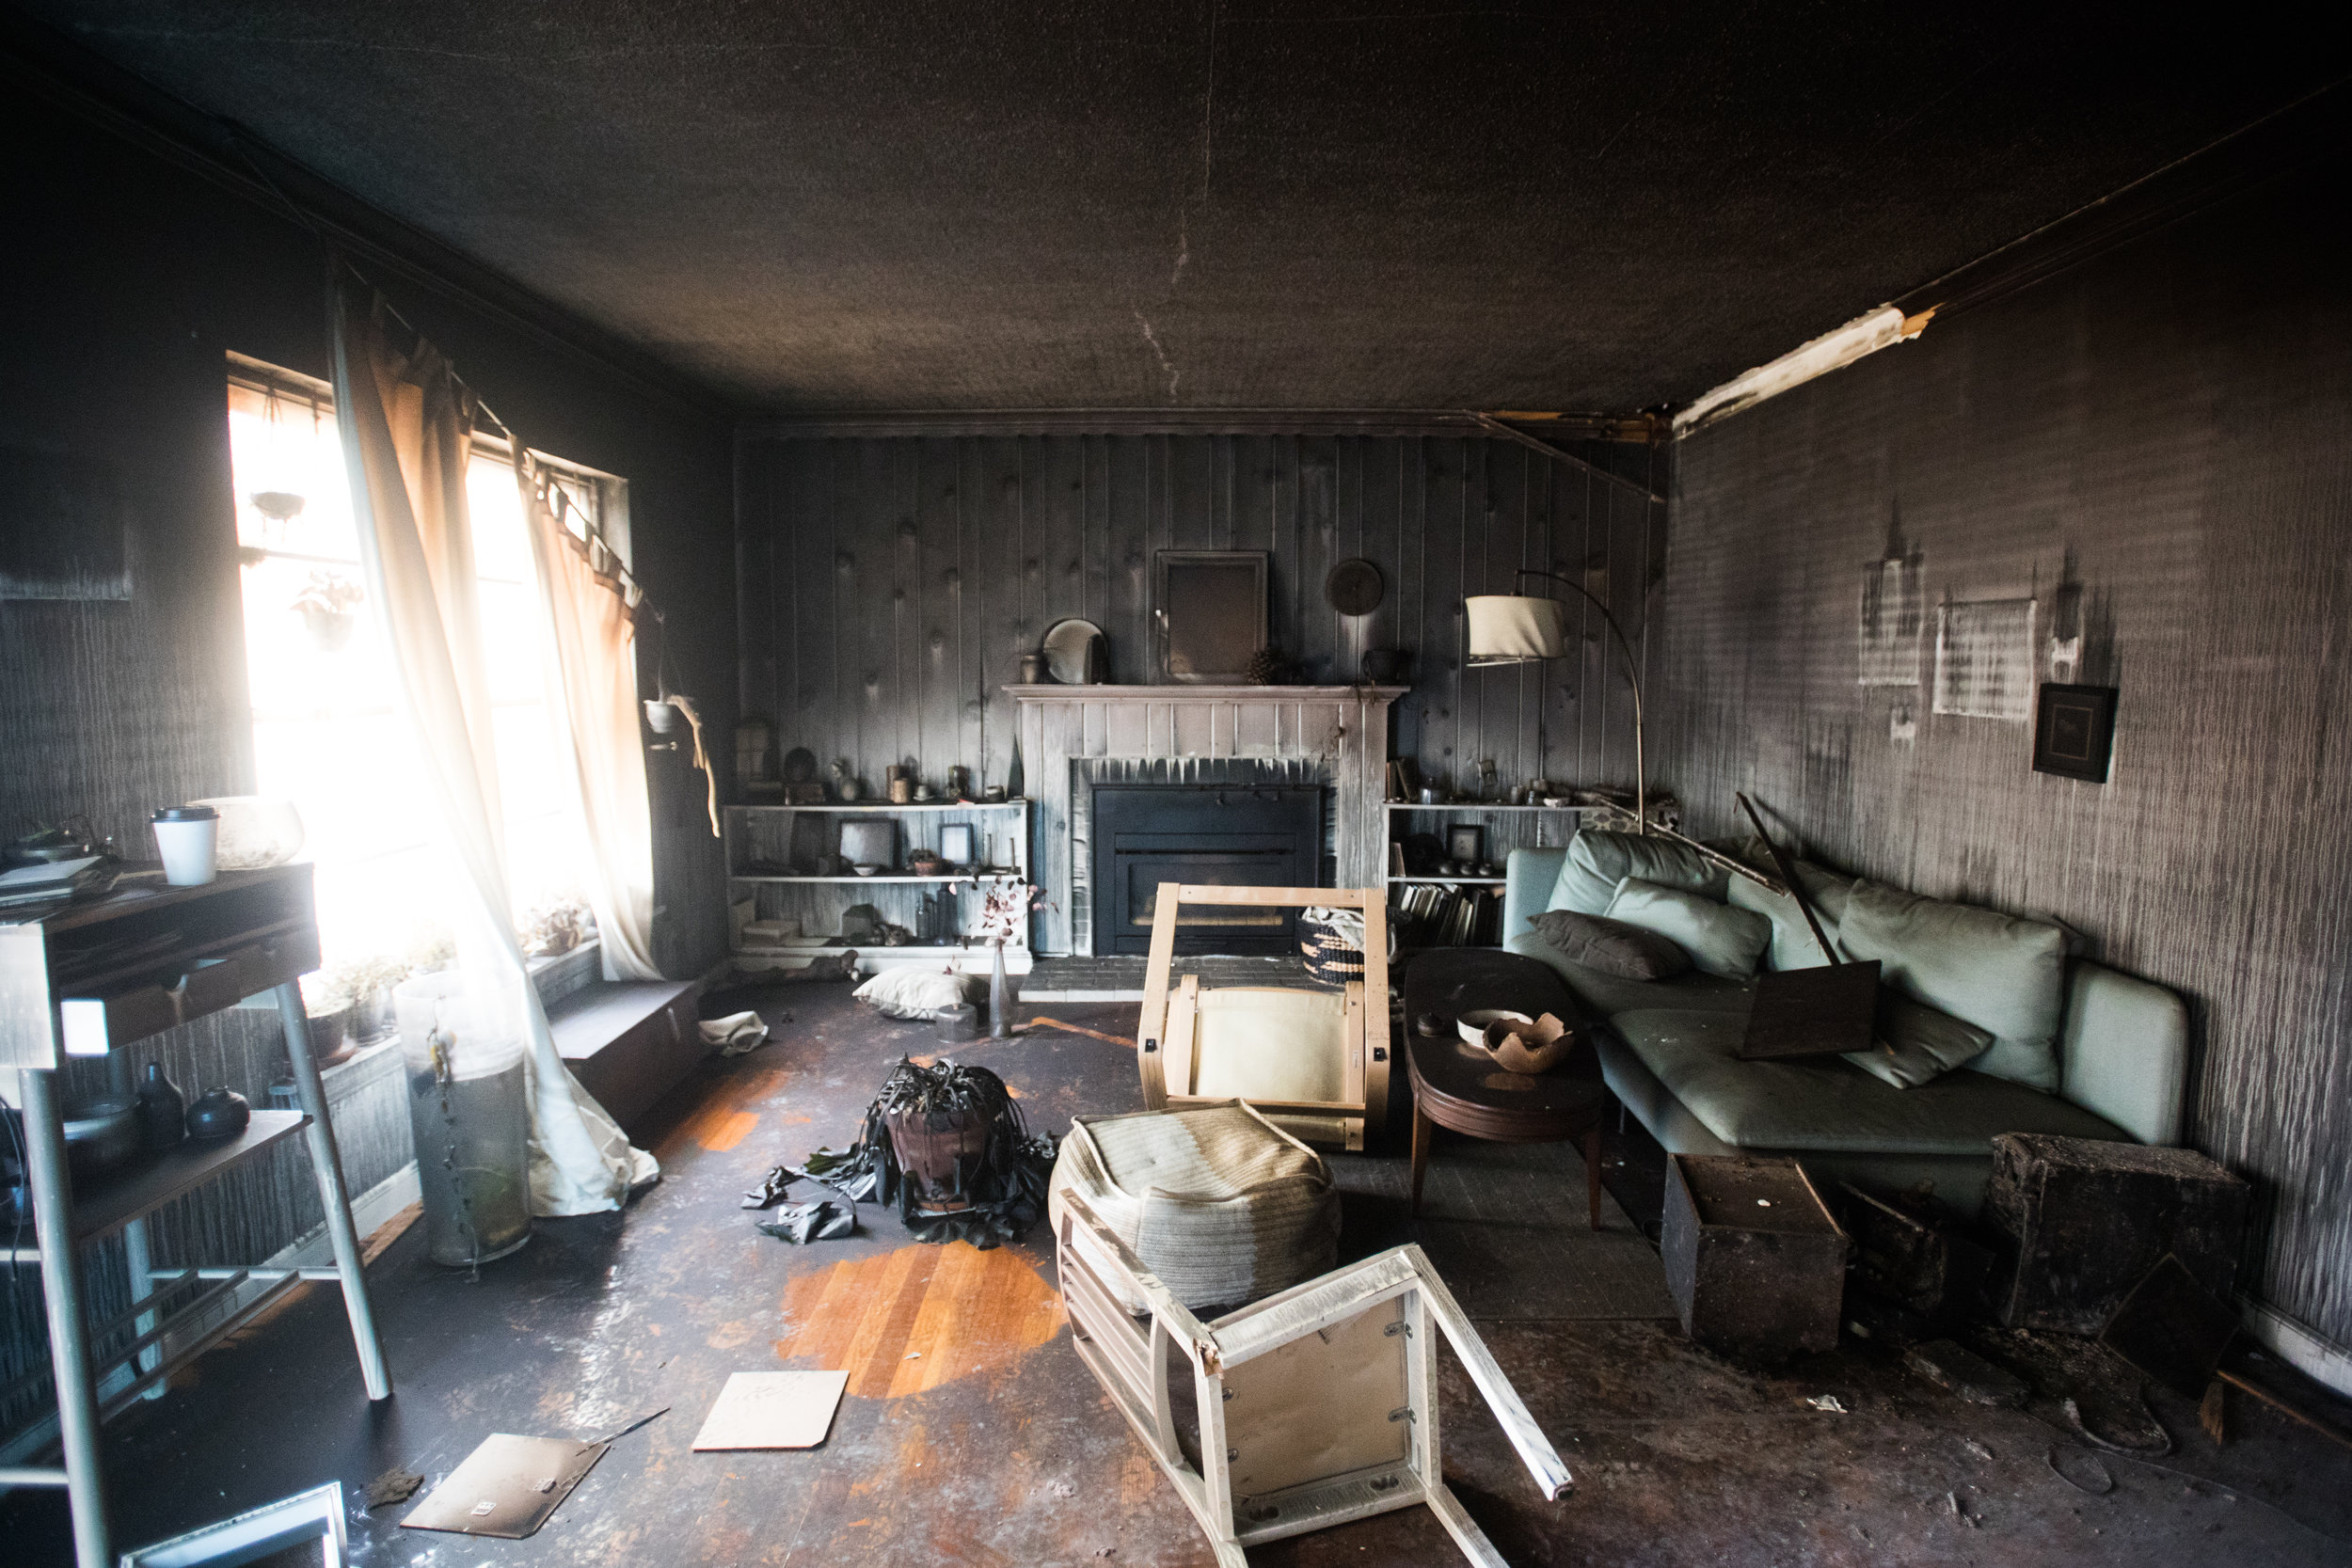 Molly captured the devastation of their home fire last year.